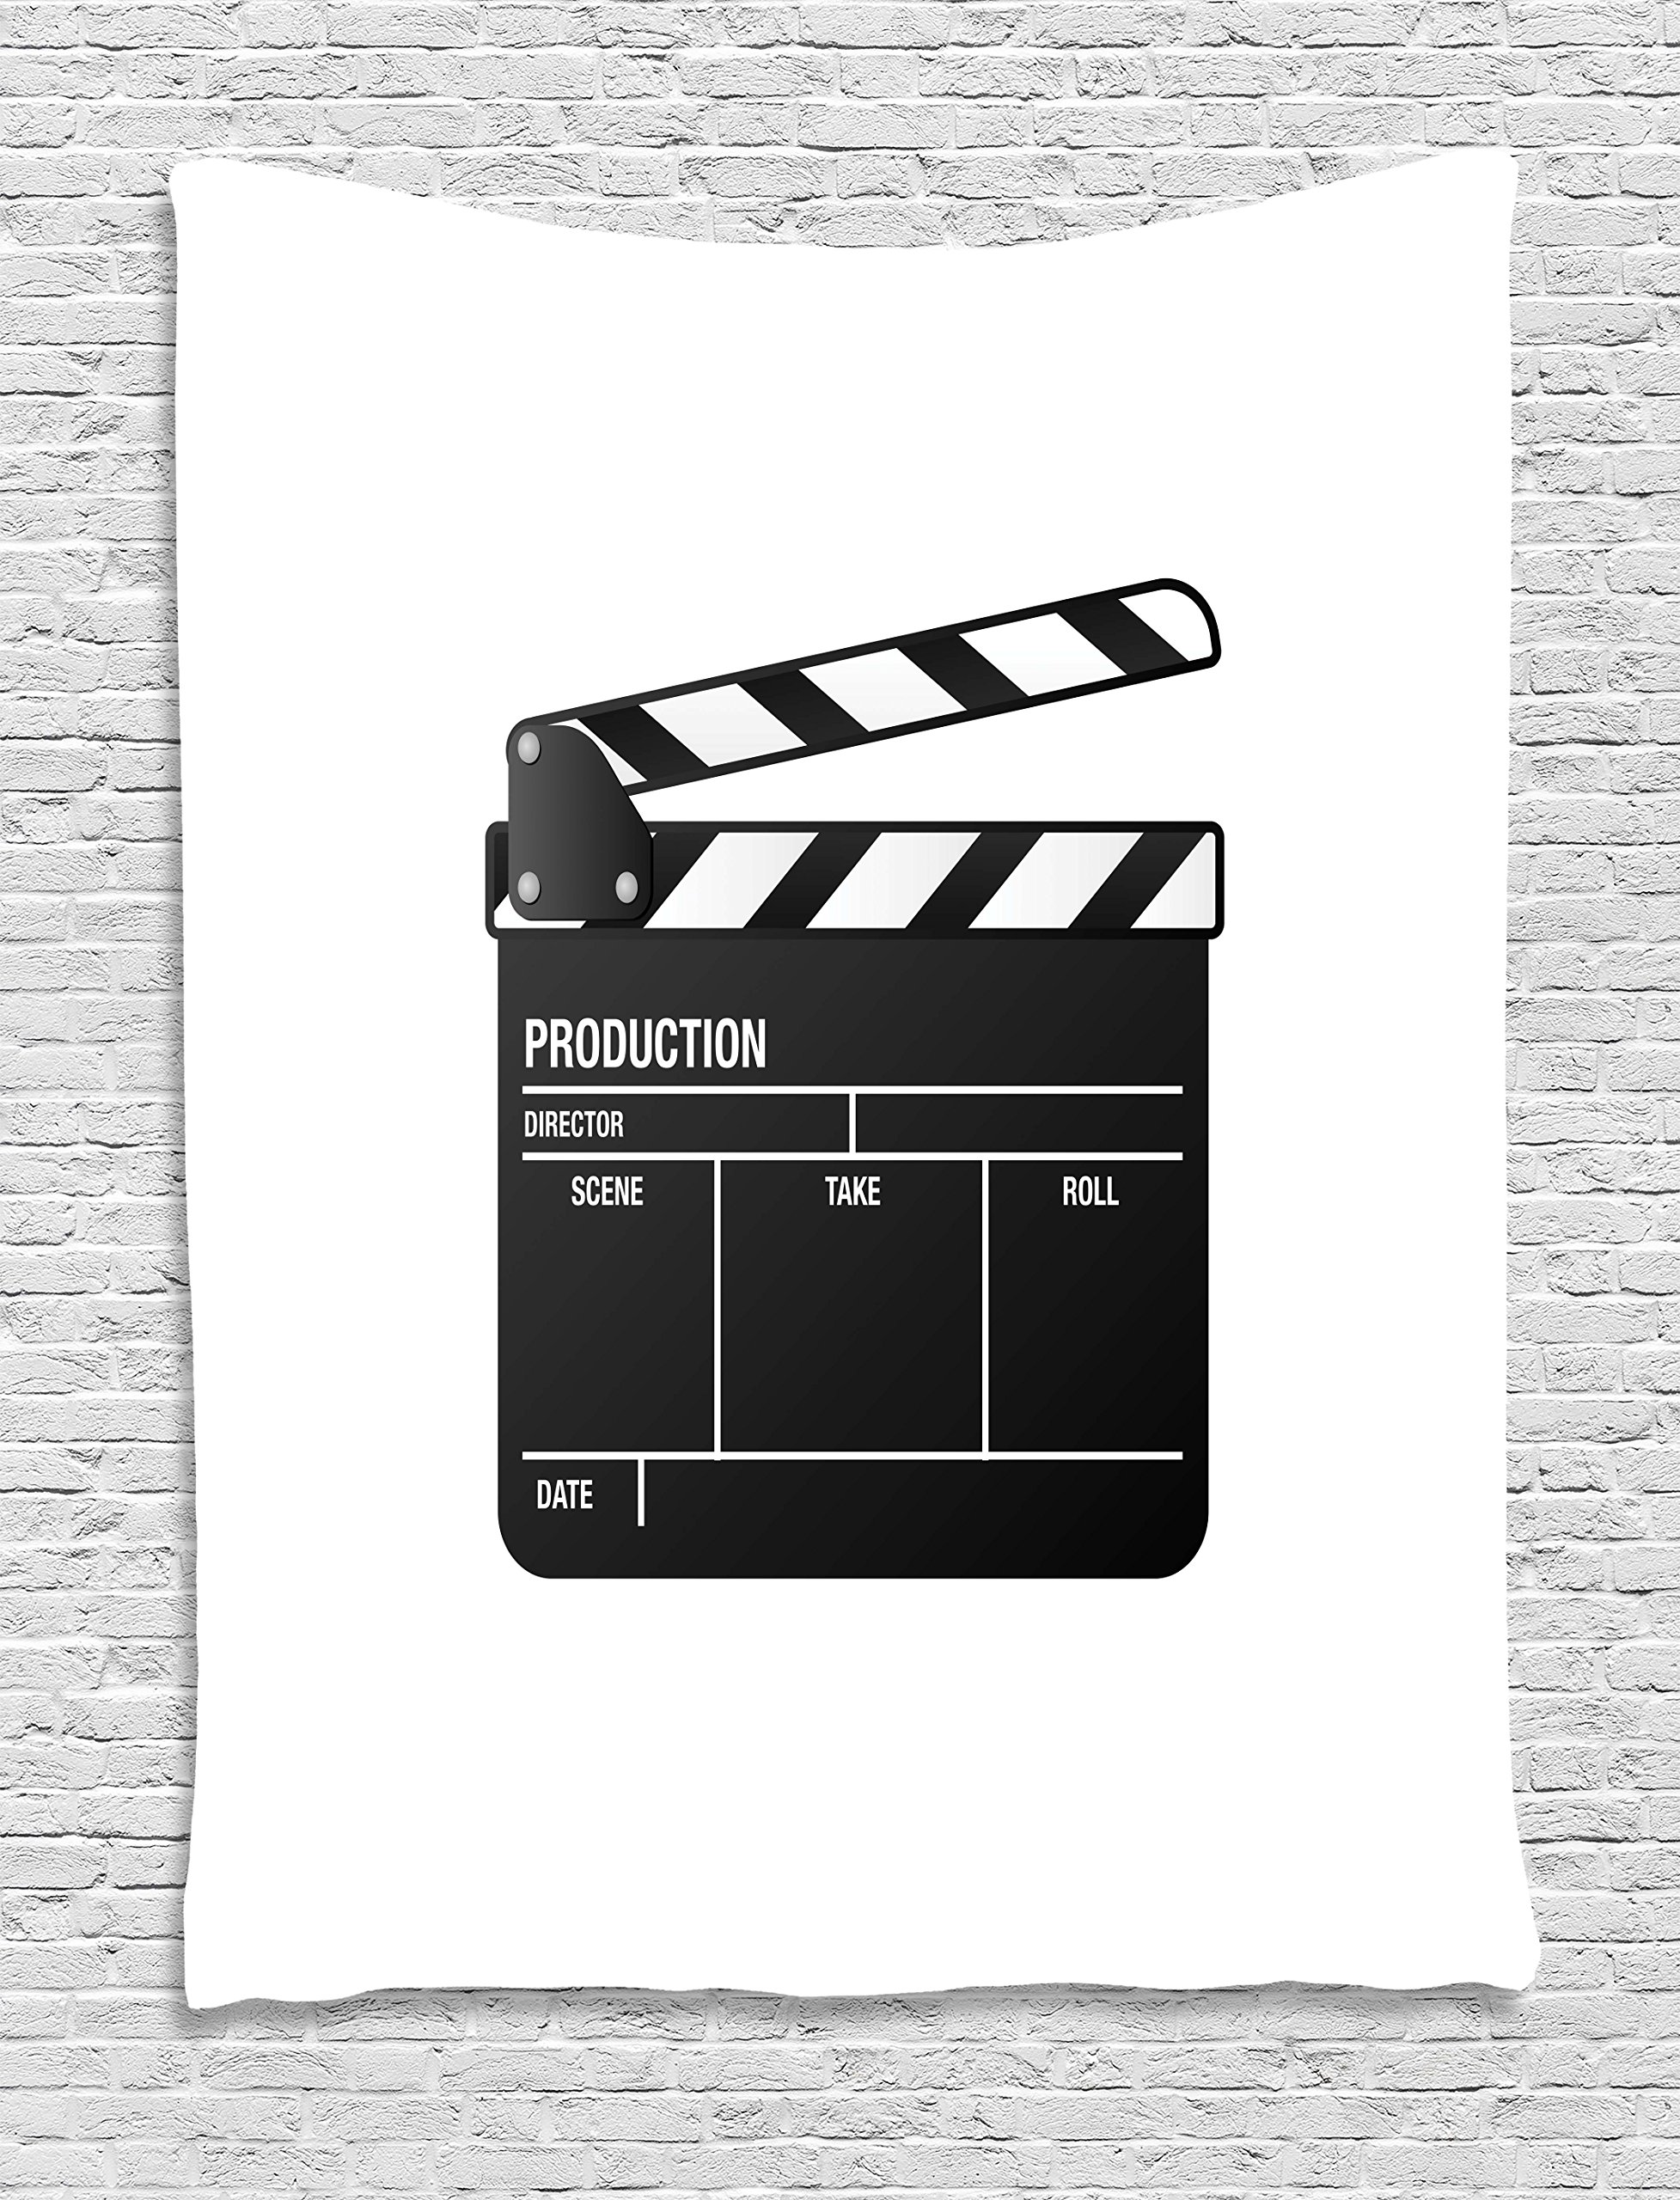 Ambesonne Movie Theater Tapestry, Realistic Illustration of a Clapper Board Symbol for Film and Video Industry, Wall Hanging for Bedroom Living Room Dorm, 40 W X 60 L inches, Black White